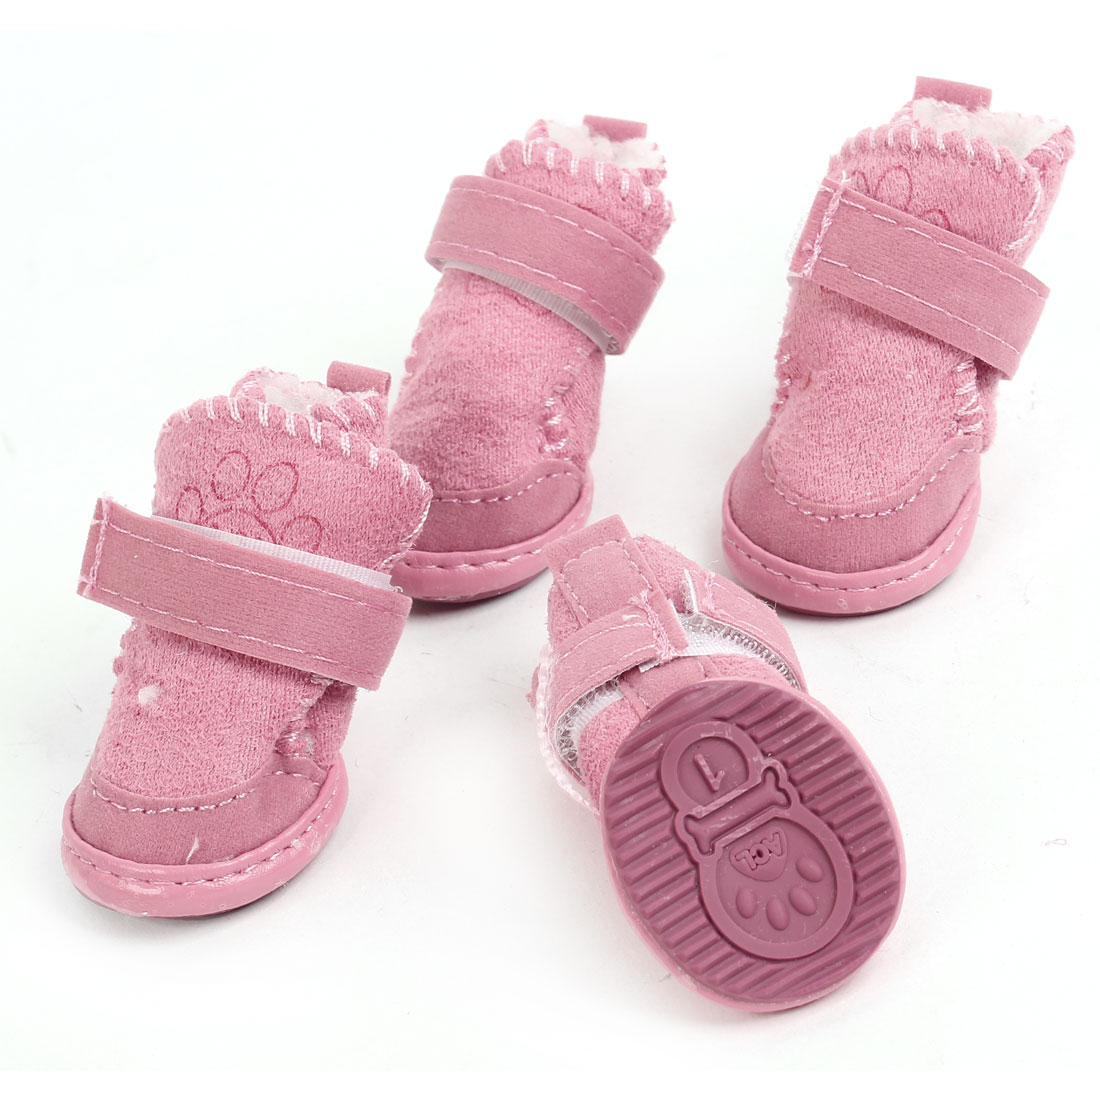 2 Pairs Pink Paw Print Nonslip Sole Detachable Closure Pet Dog Shoes Boot XXS - image 1 of 1